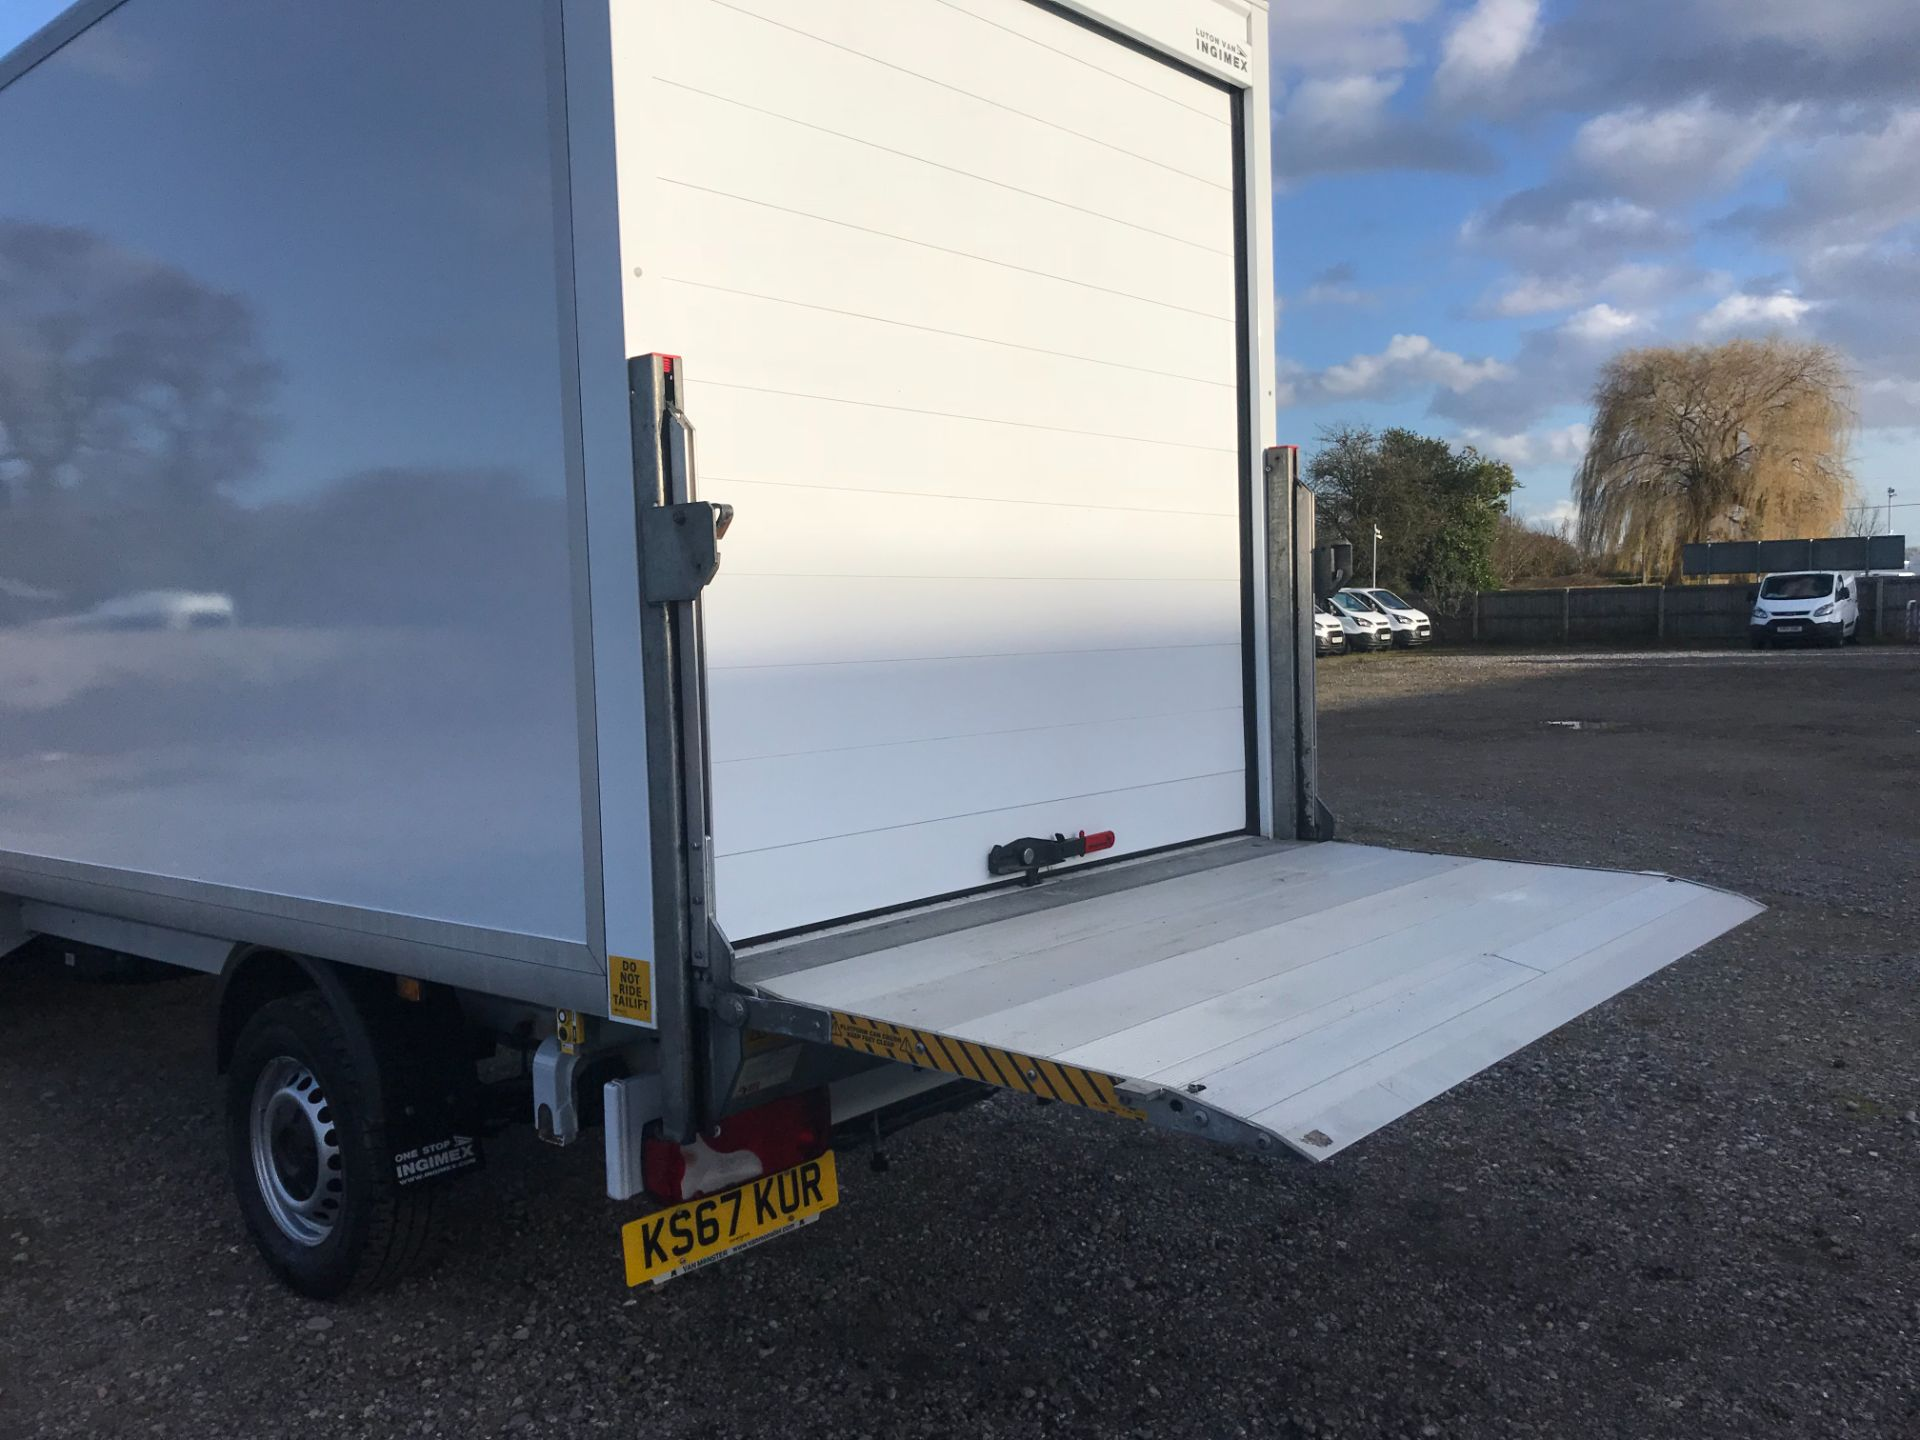 2018 Mercedes-Benz Sprinter 314 LWB LUTON EURO 6 With Tail Lift (KS67KUR) Thumbnail 34